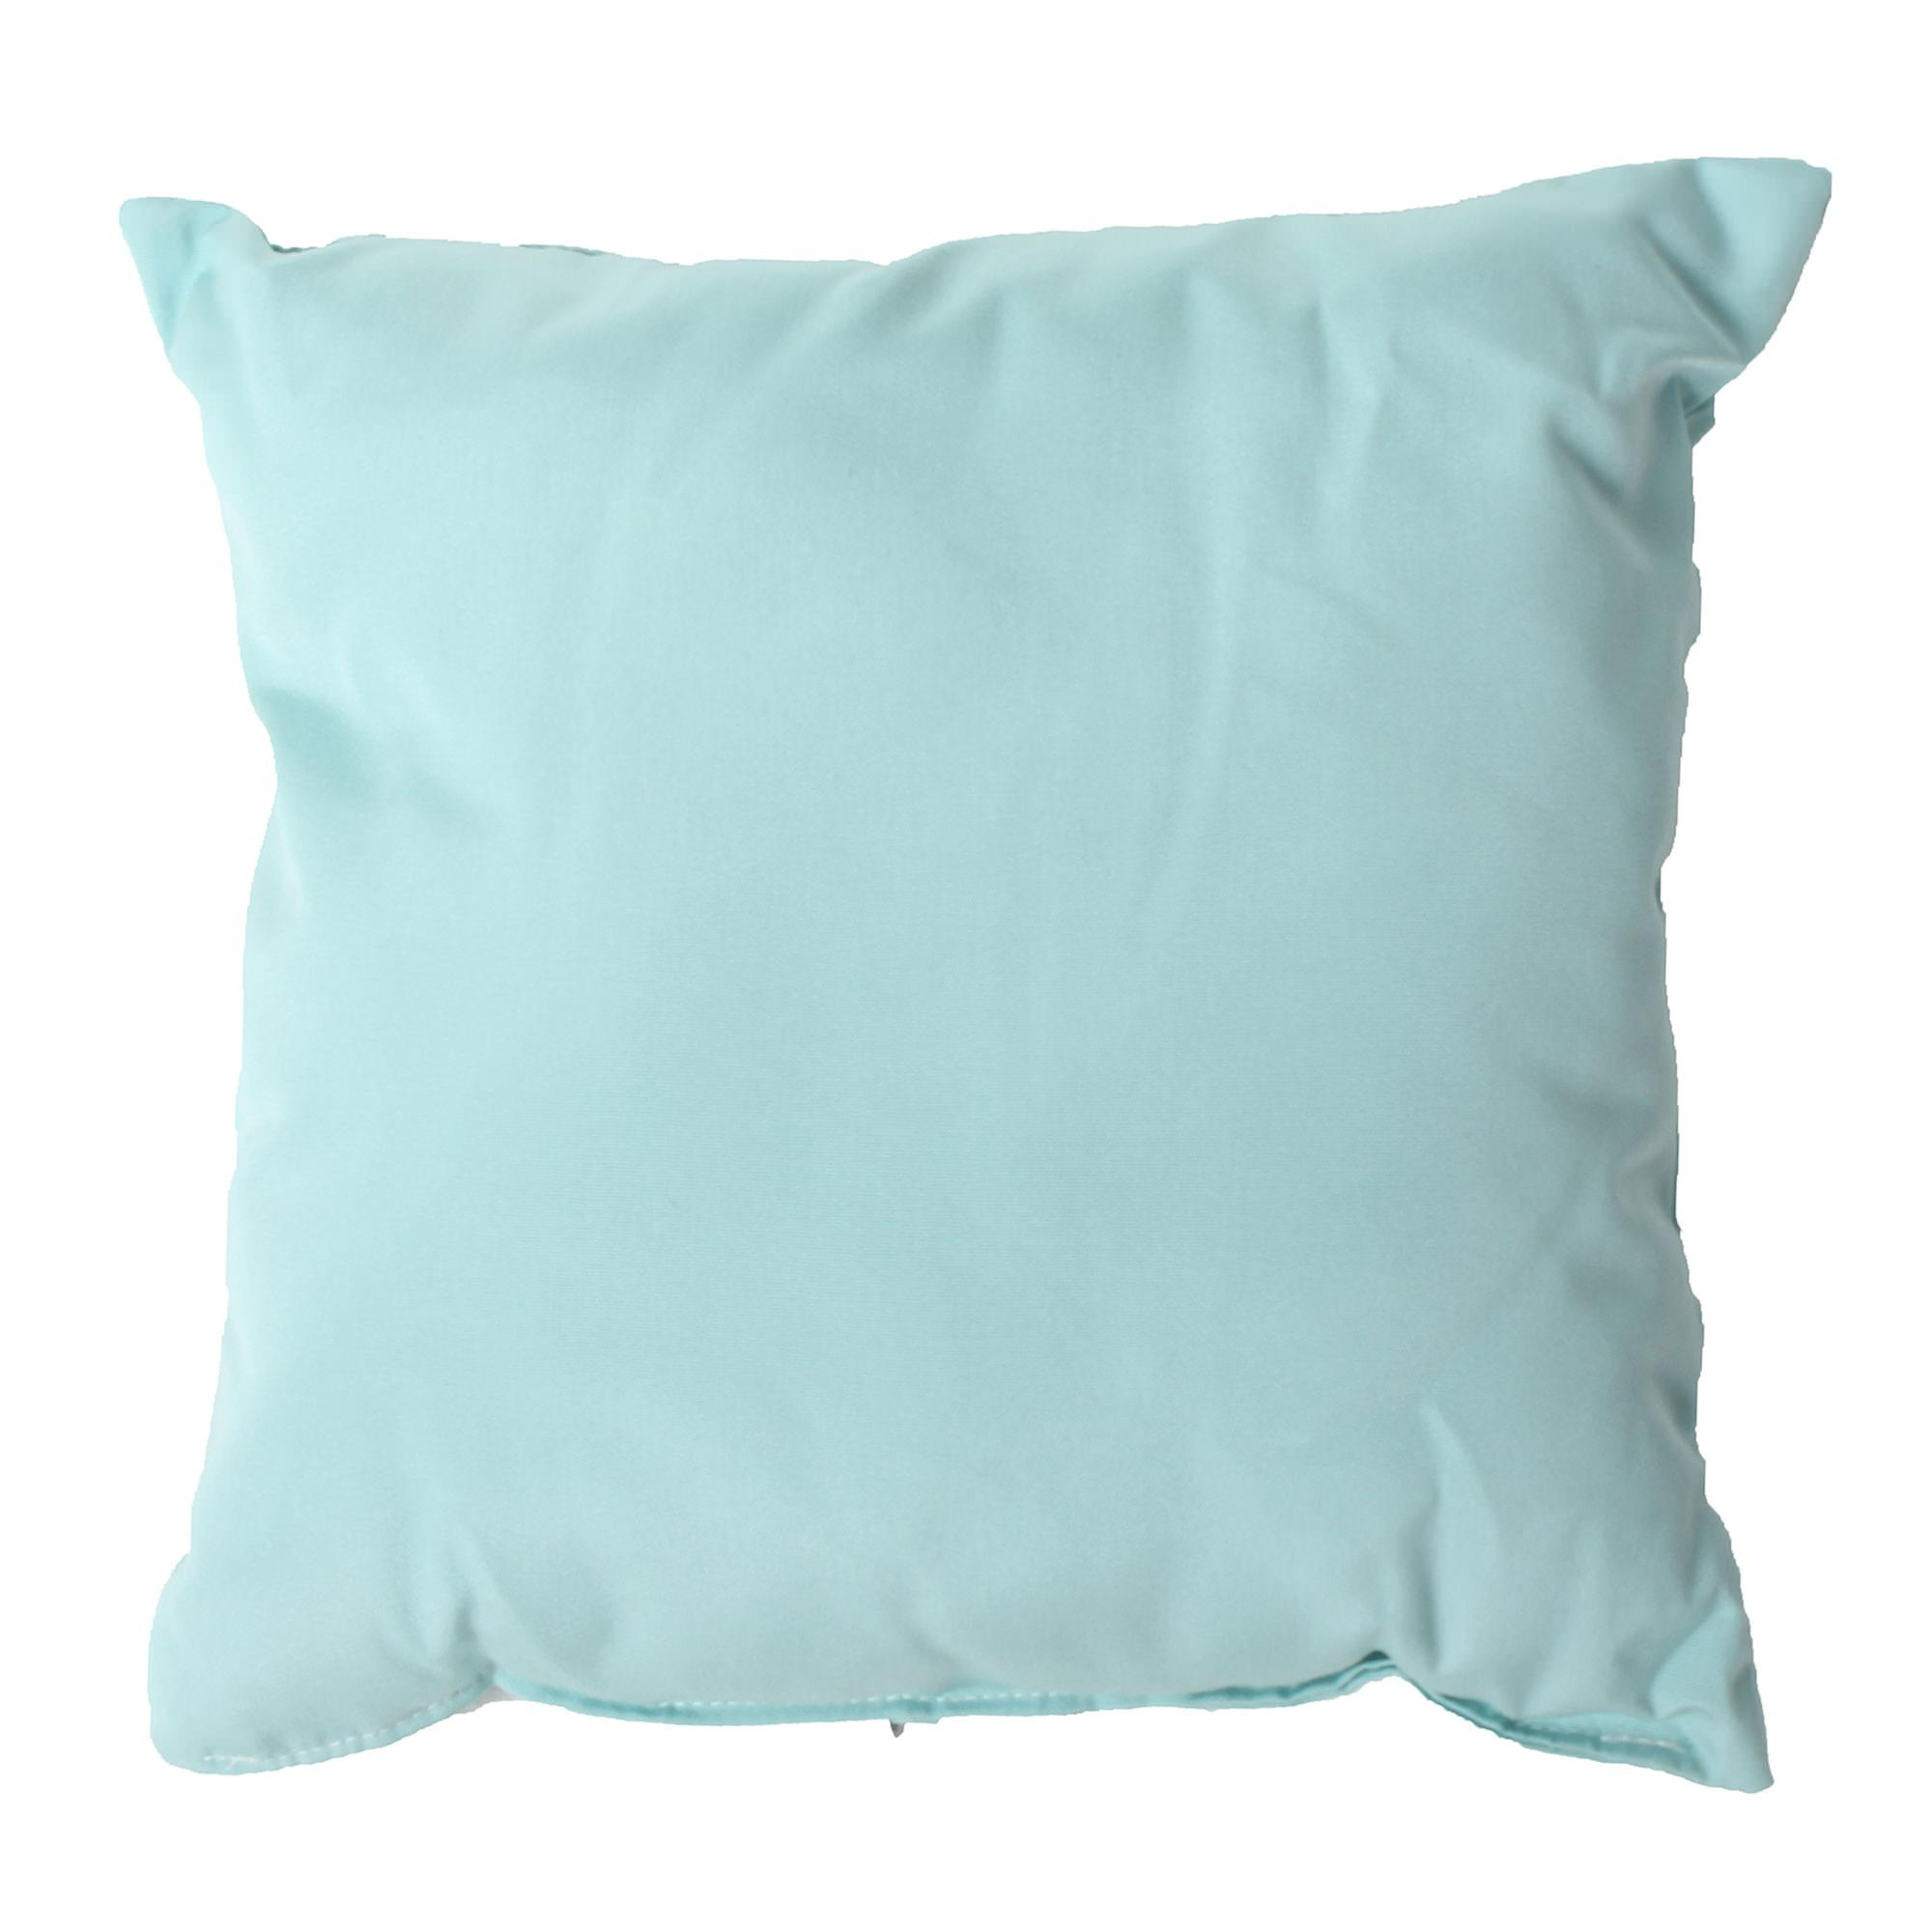 Glacier Sunbrella Outdoor Throw Pillow DFOHome